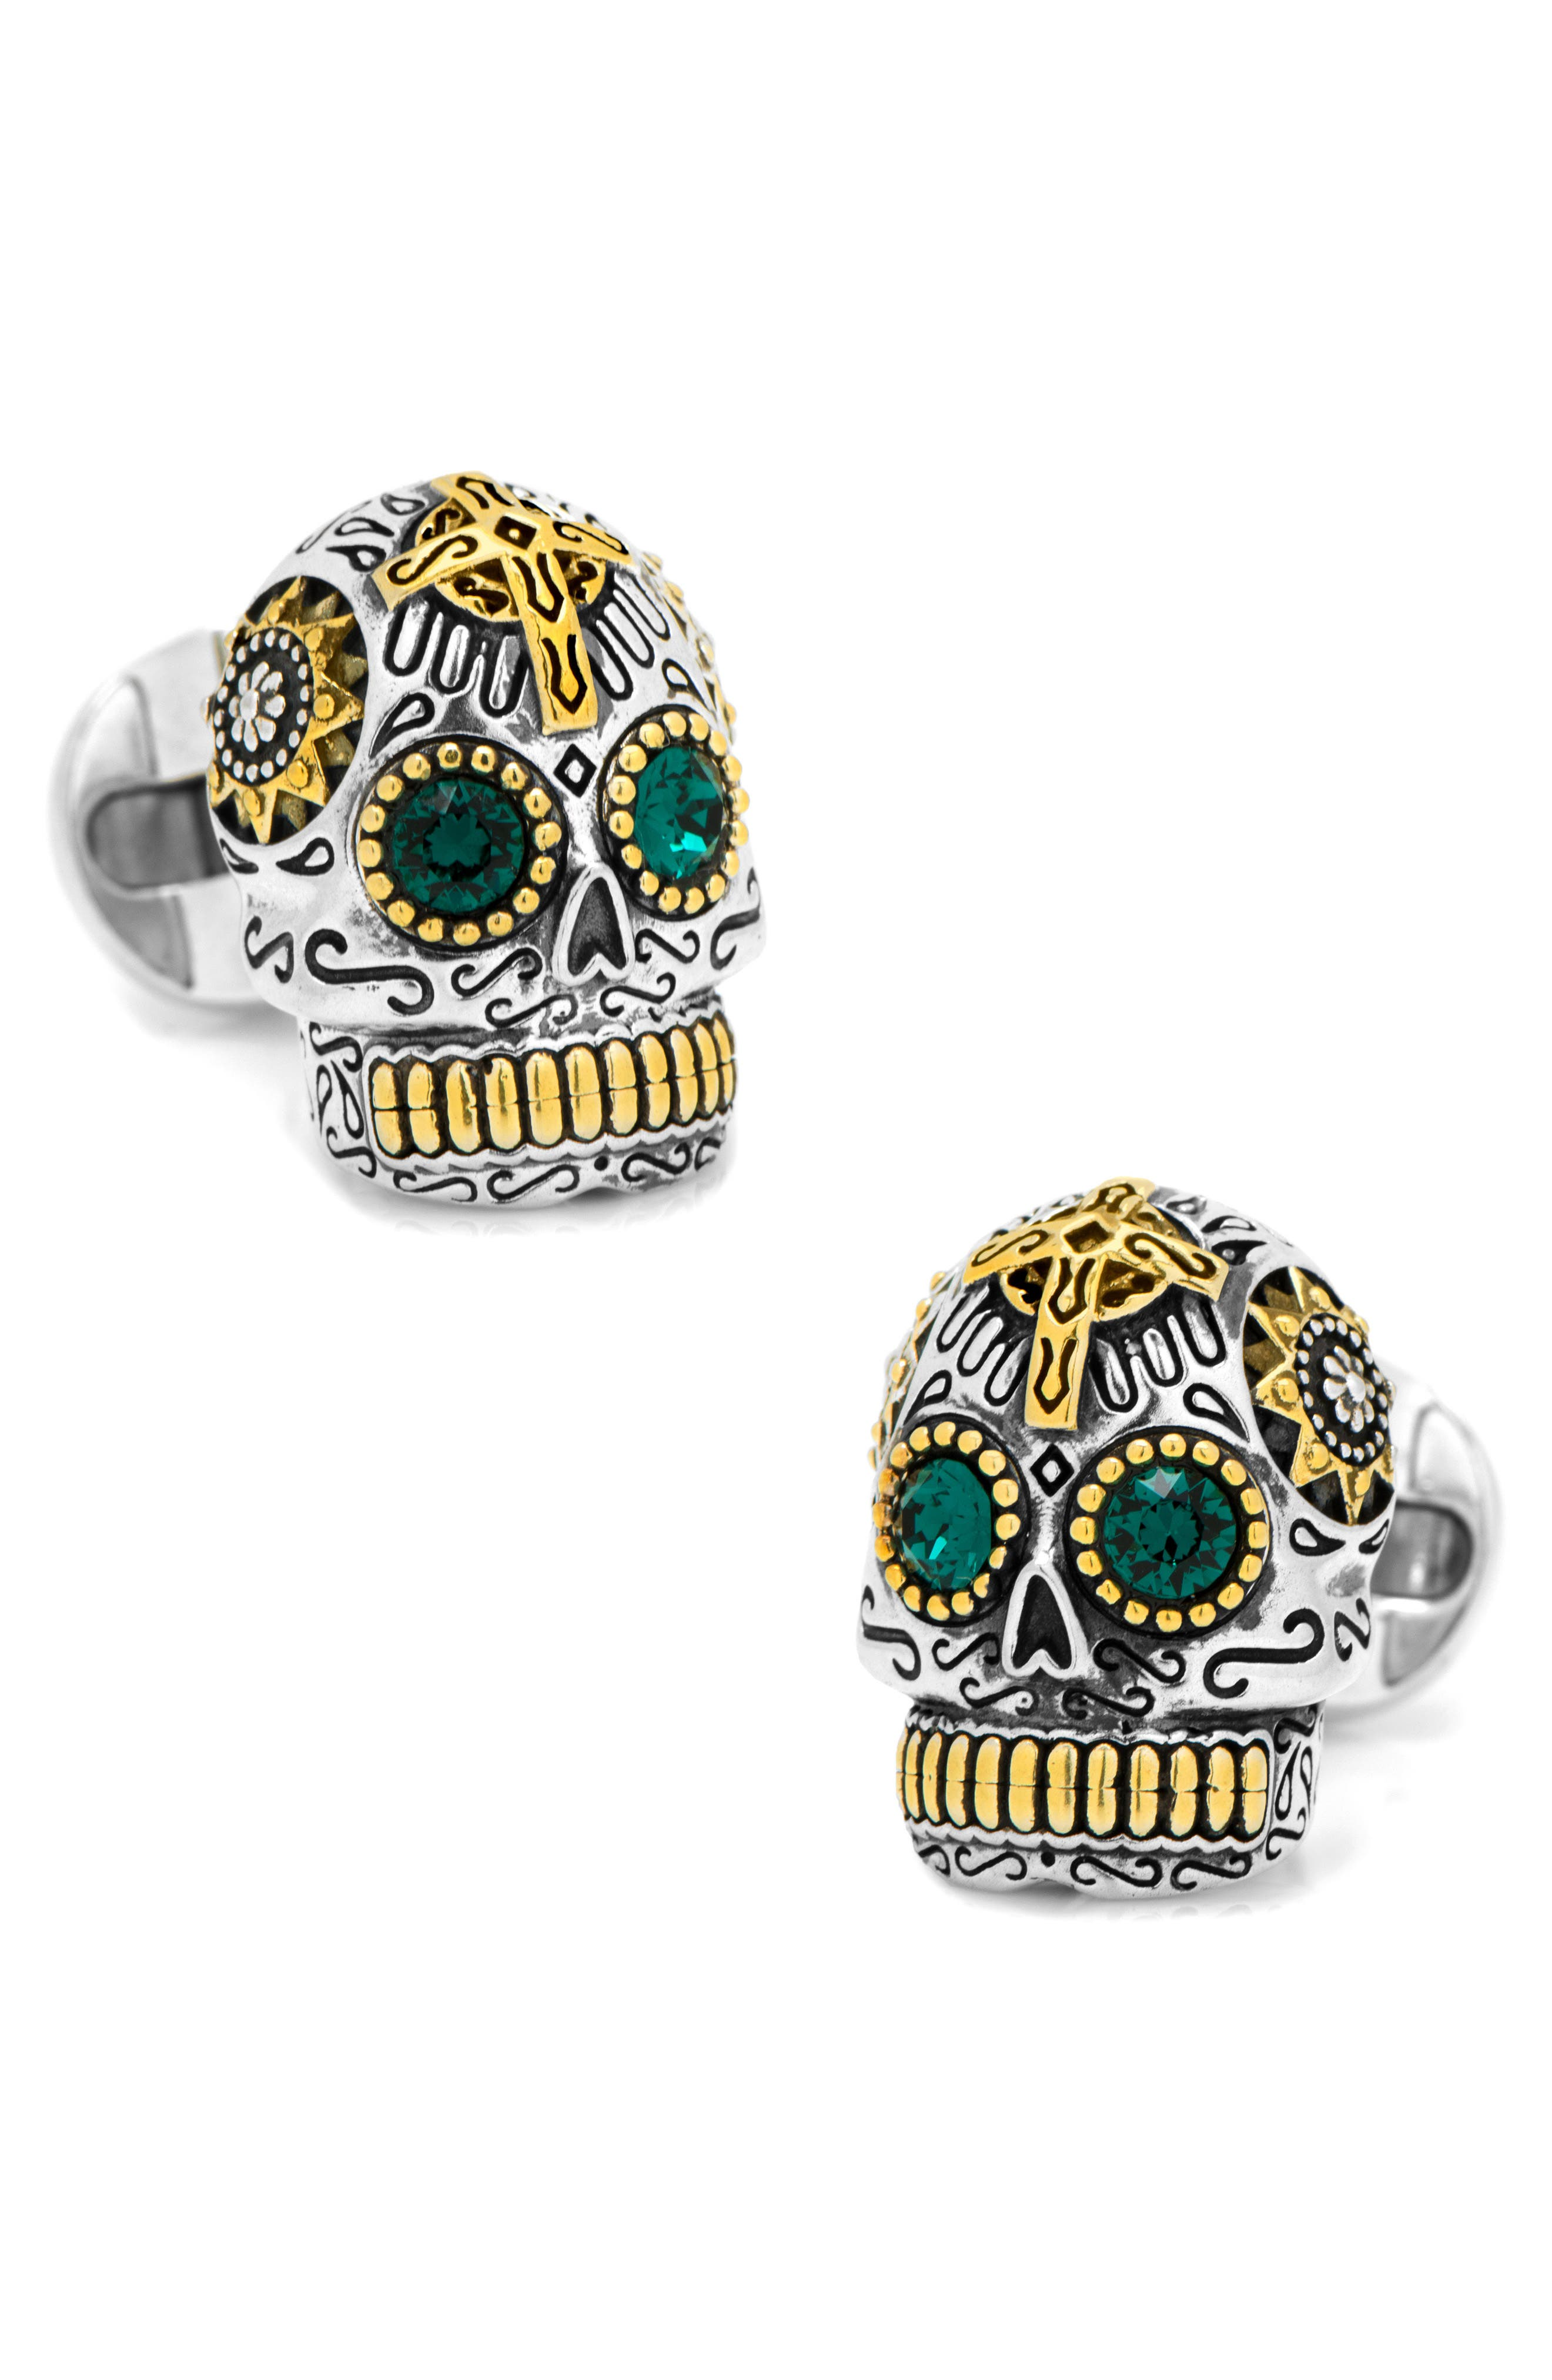 Skull Cuff Links,                             Main thumbnail 1, color,                             Silver